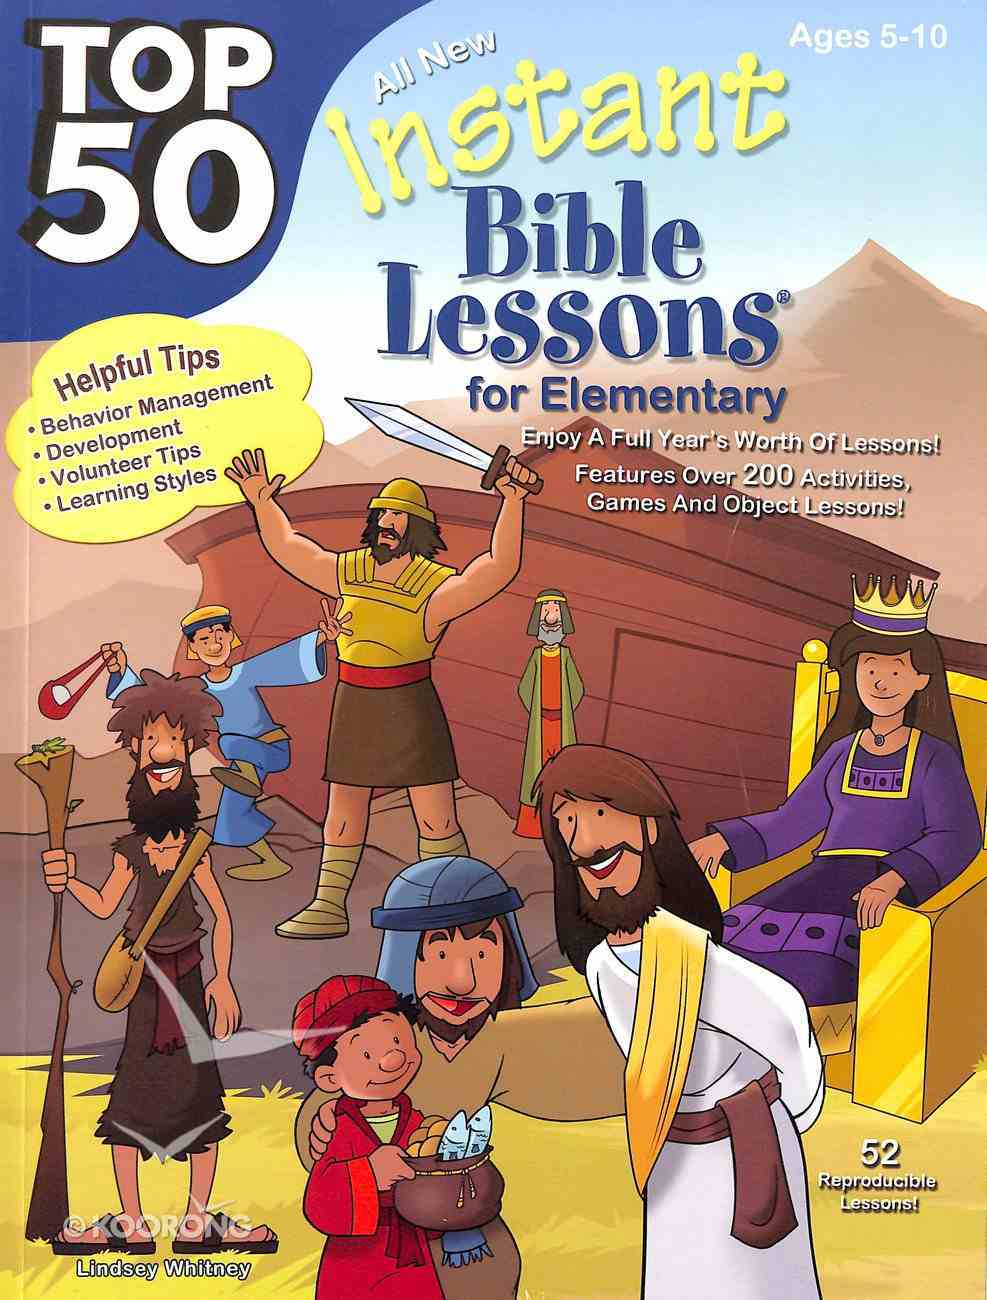 Top 50 Instant Bible Lessons For Elementary With Object Lessons (Rosekidz Top 50 Series) Paperback